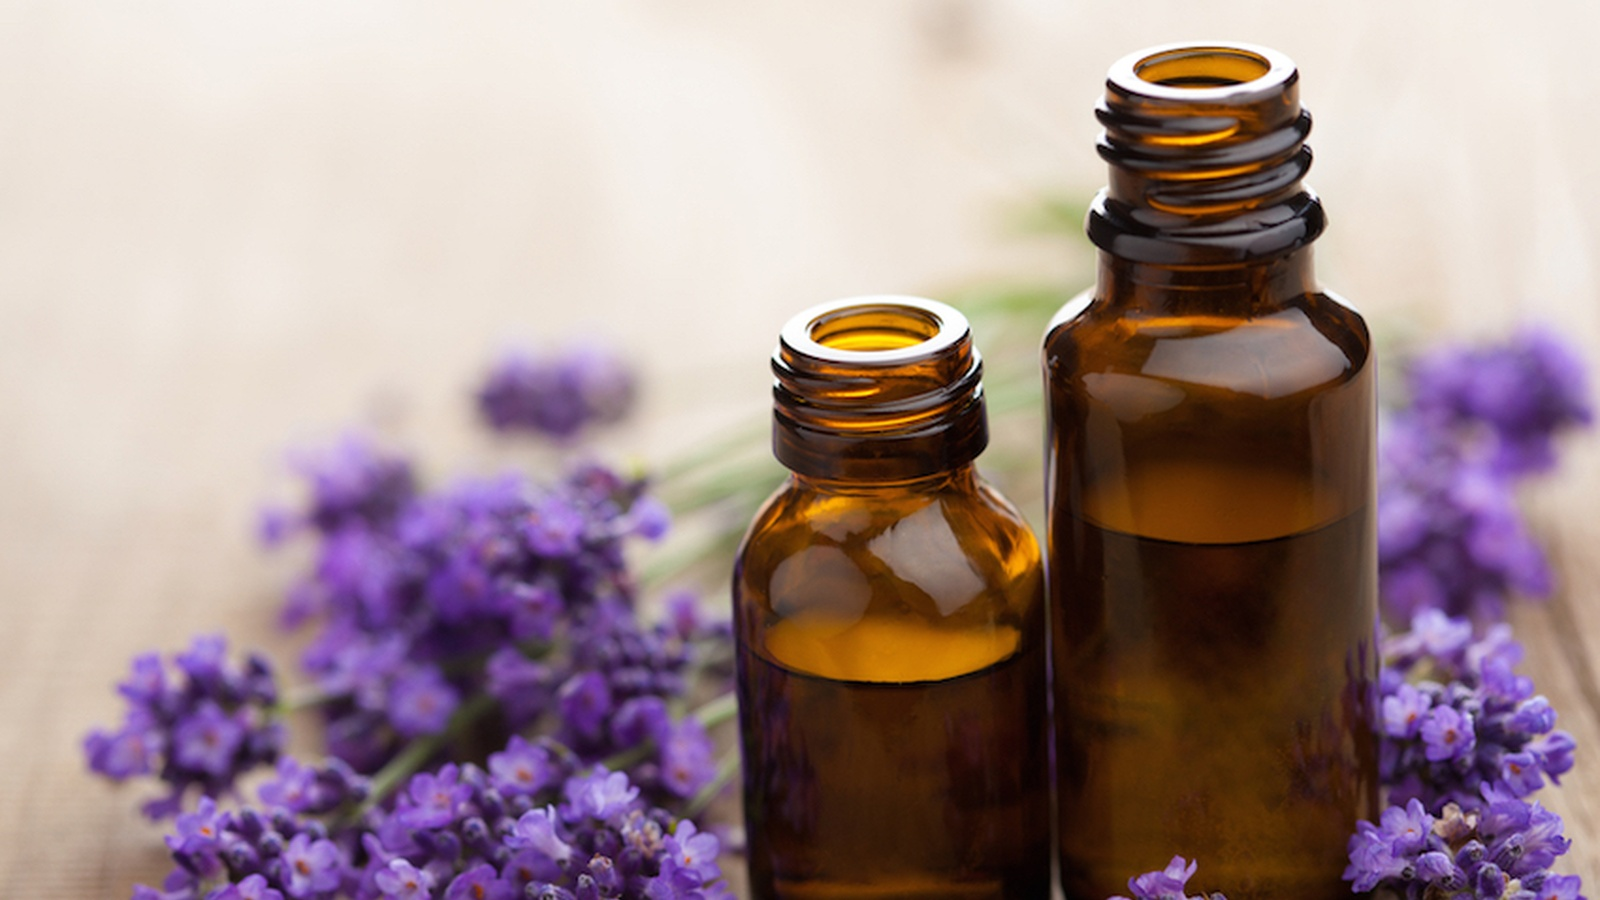 Dr Z's Essential Oil Tips For Treating Leaky Gut!